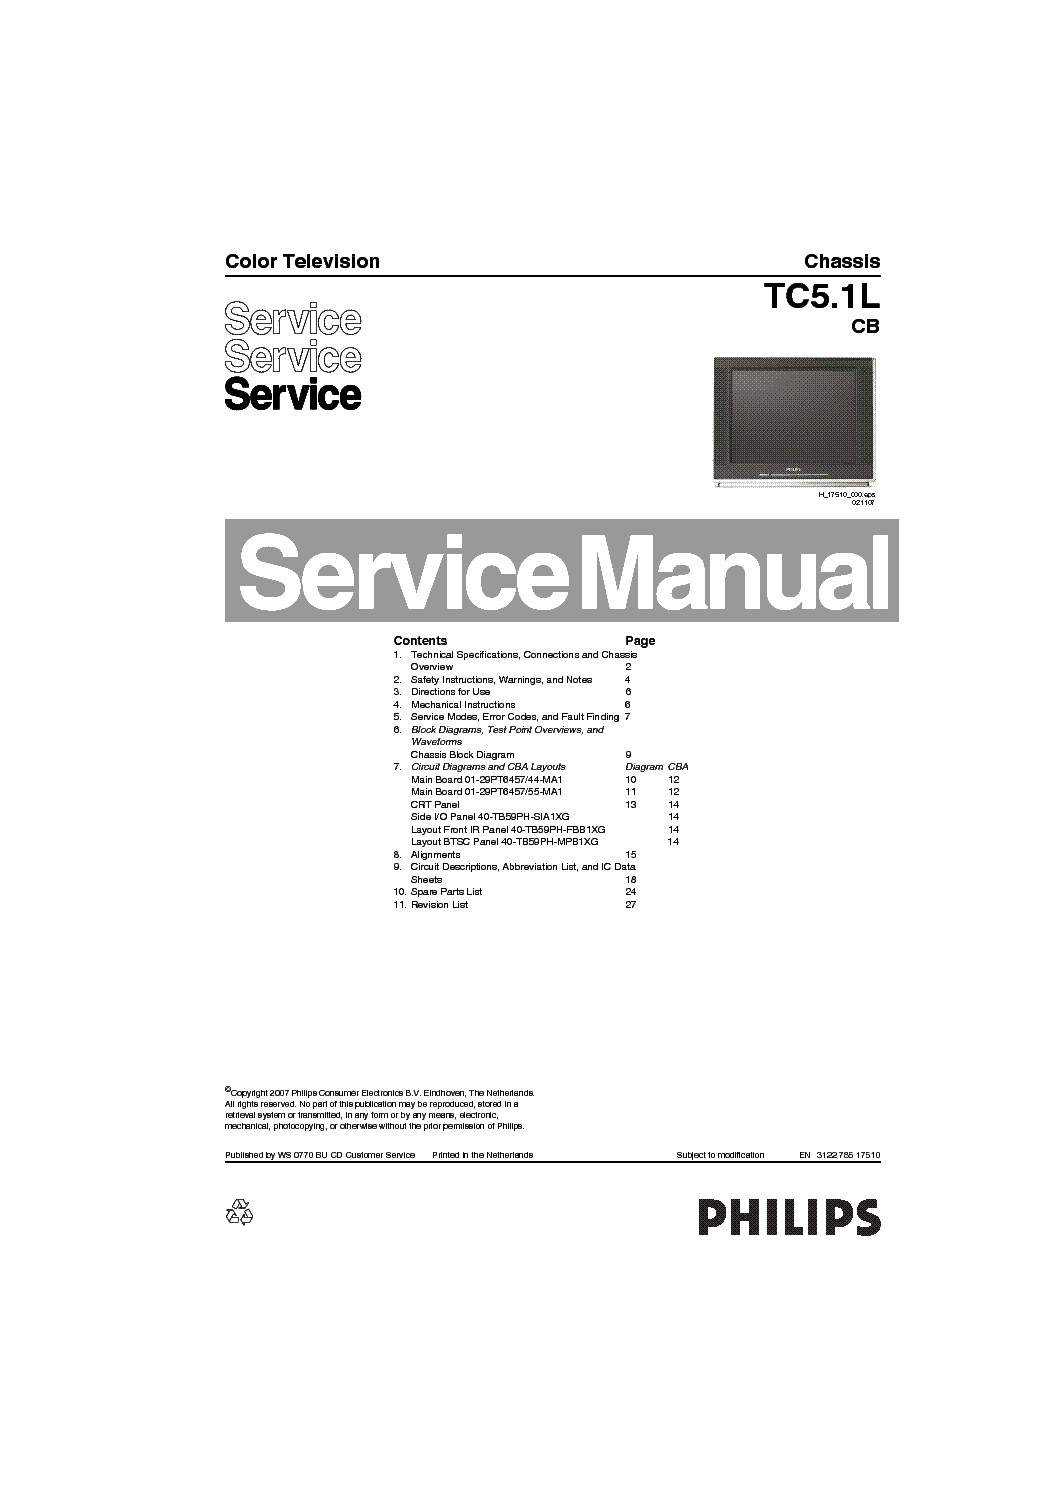 PHILIPS CH L01.2A AB Service Manual free download